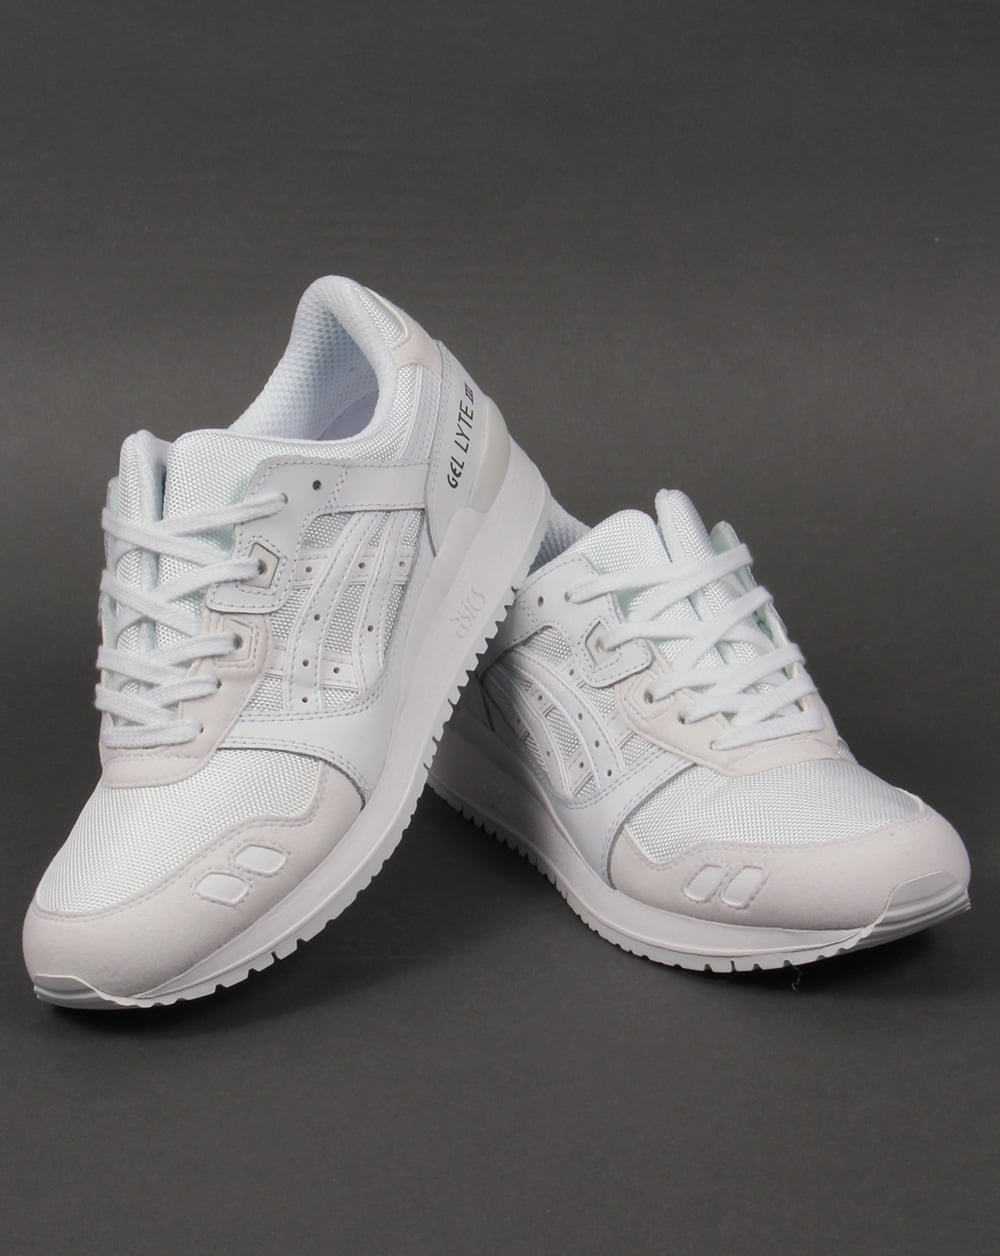 asics gel lyte iii suede trainers white white 3 shoes. Black Bedroom Furniture Sets. Home Design Ideas